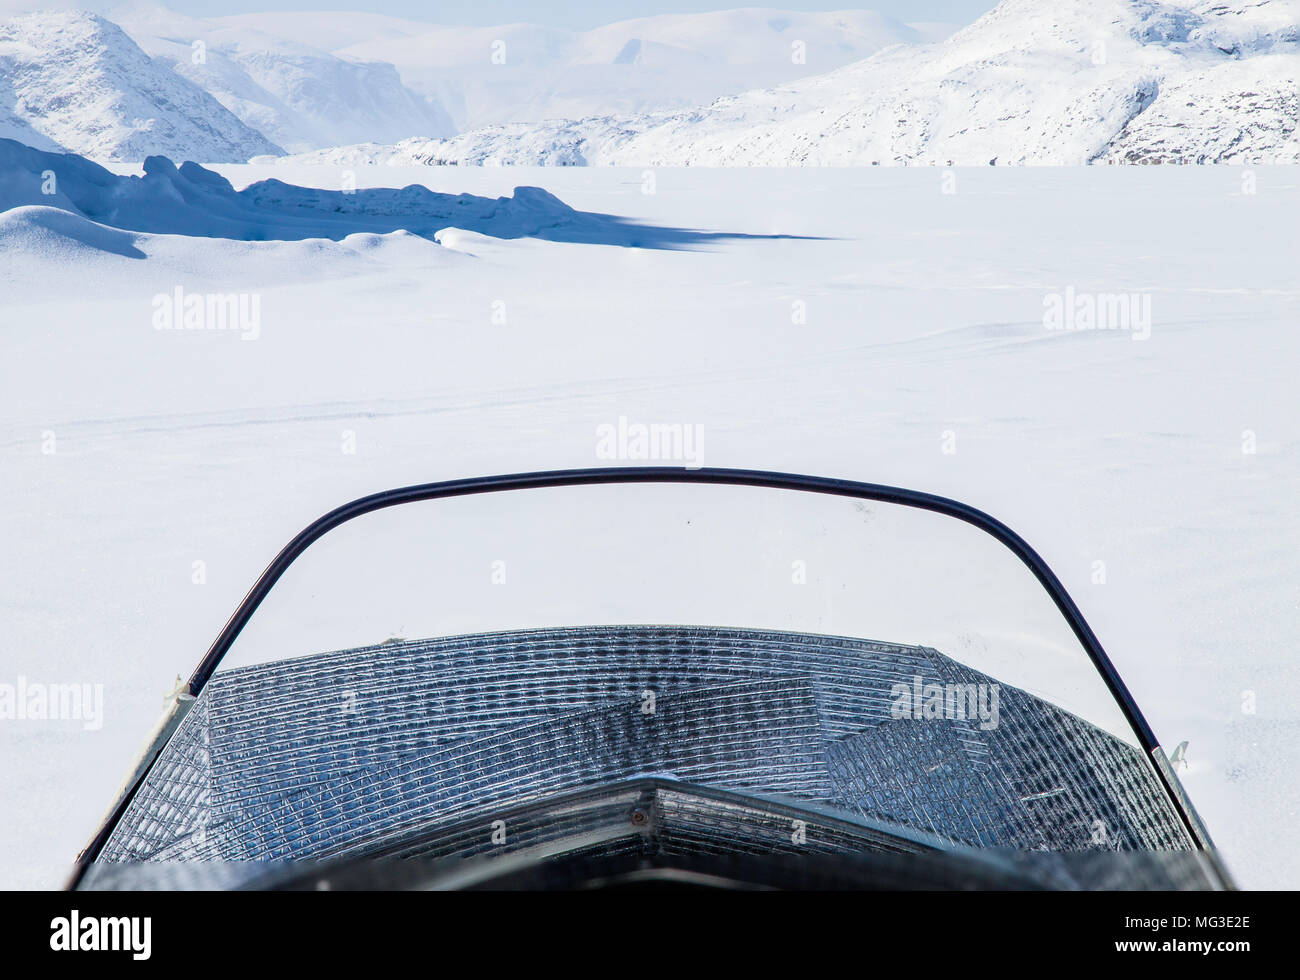 View of the fjord ahead from the front of a ski doo.  Nunavut, Baffin Island, Canada, arctic - Stock Image